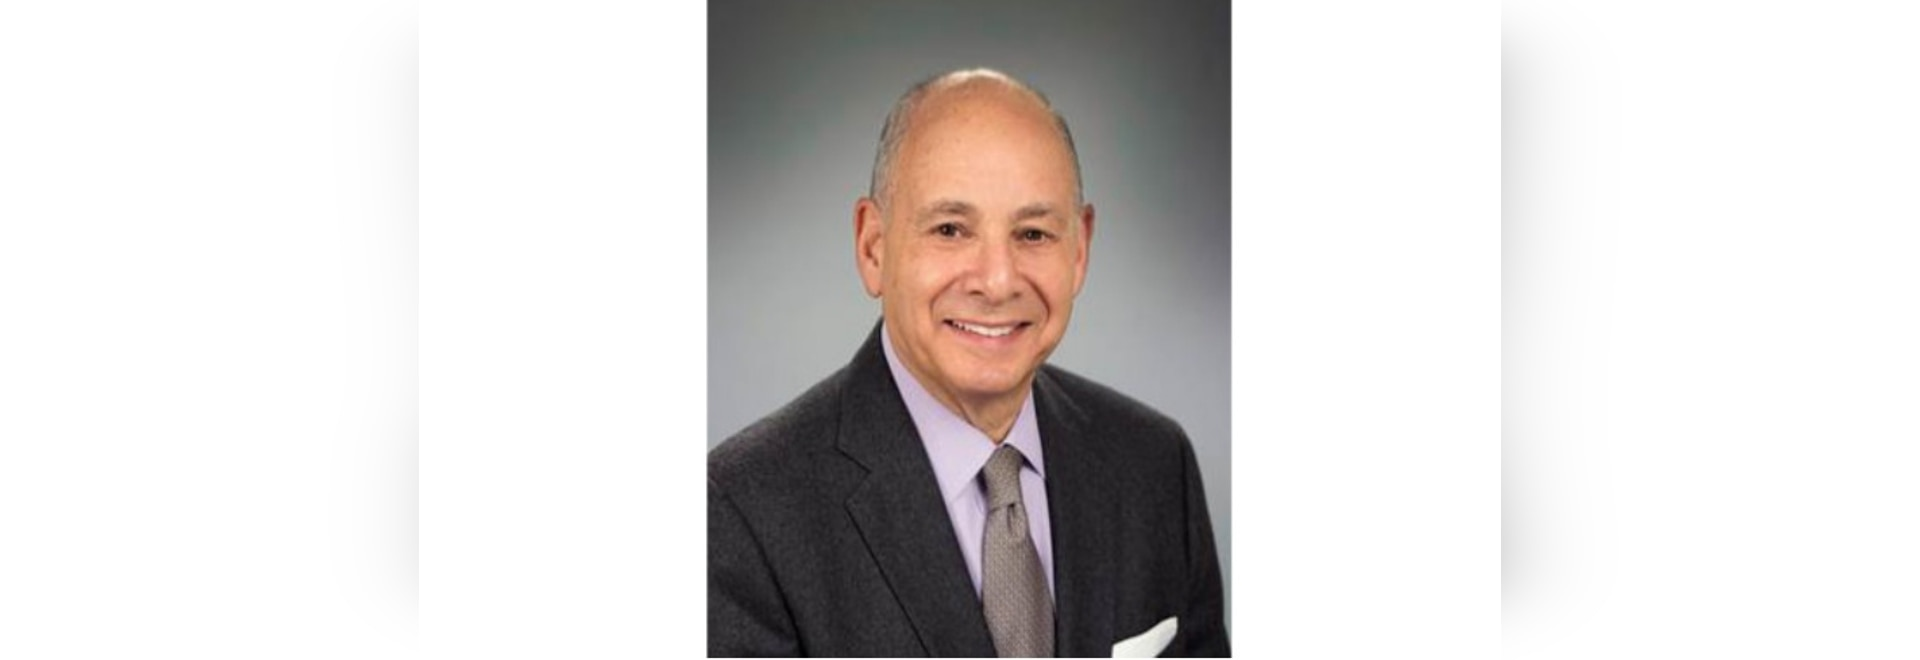 Robert Lazaro and David Speck Join Metropolitan Washington Airports Authority Board of Directors